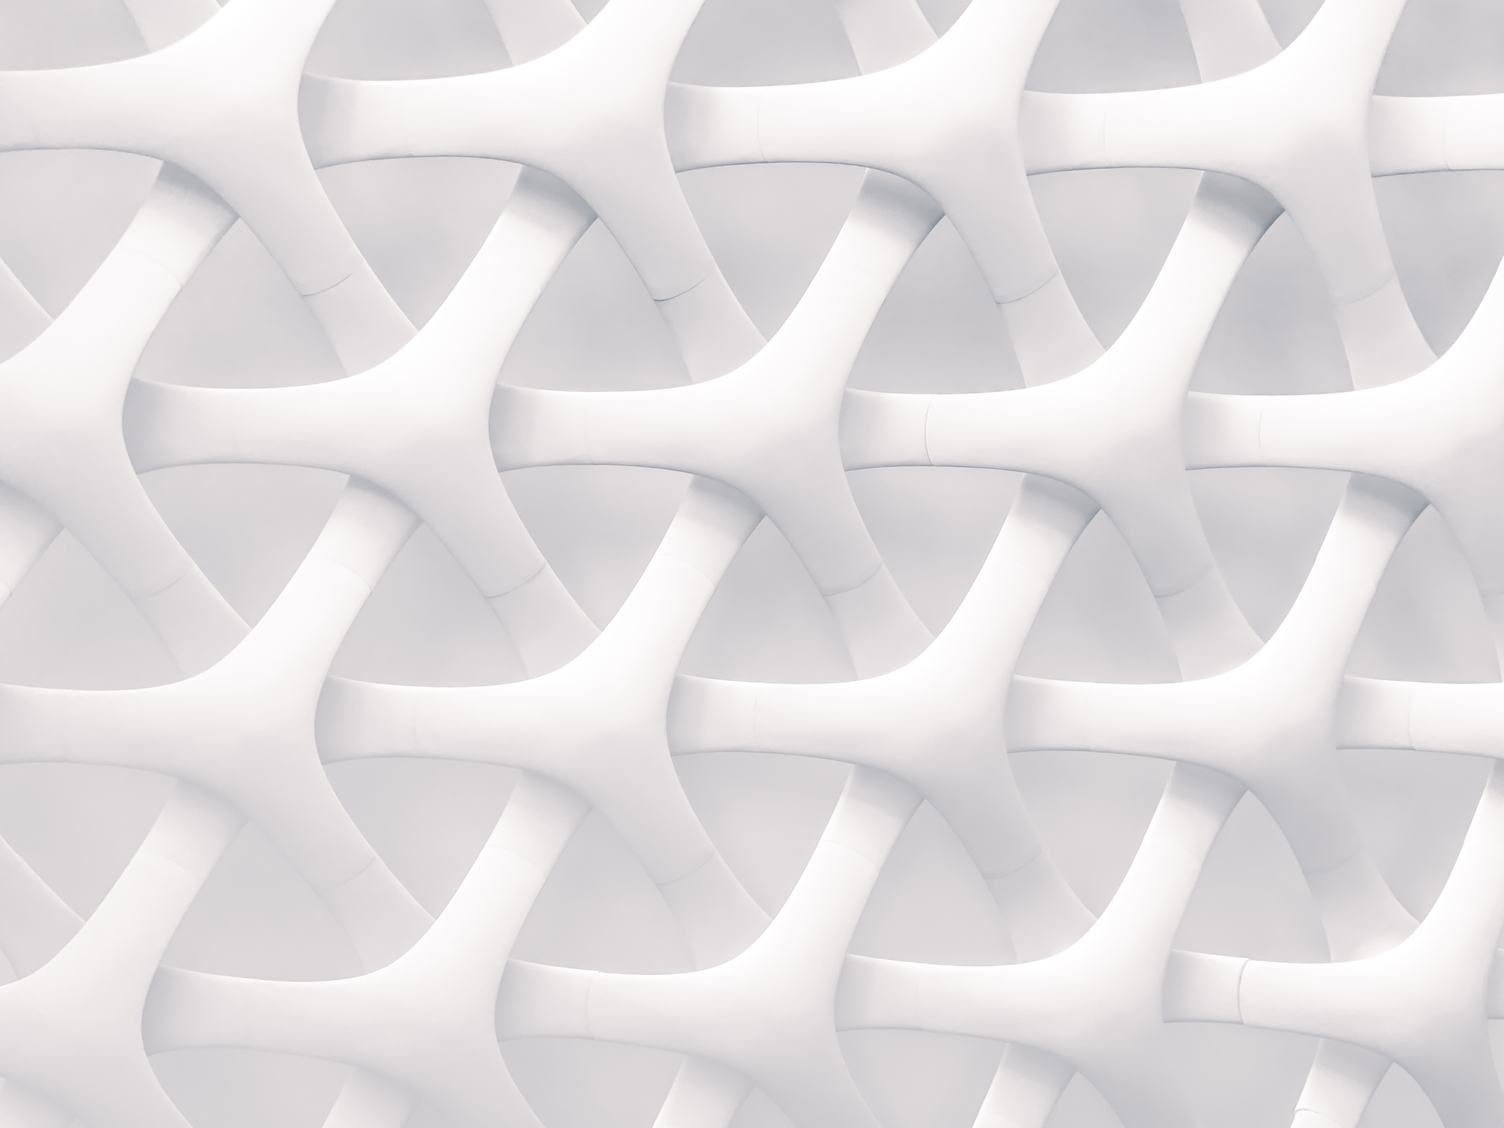 White Abstract Overlapping Pattern